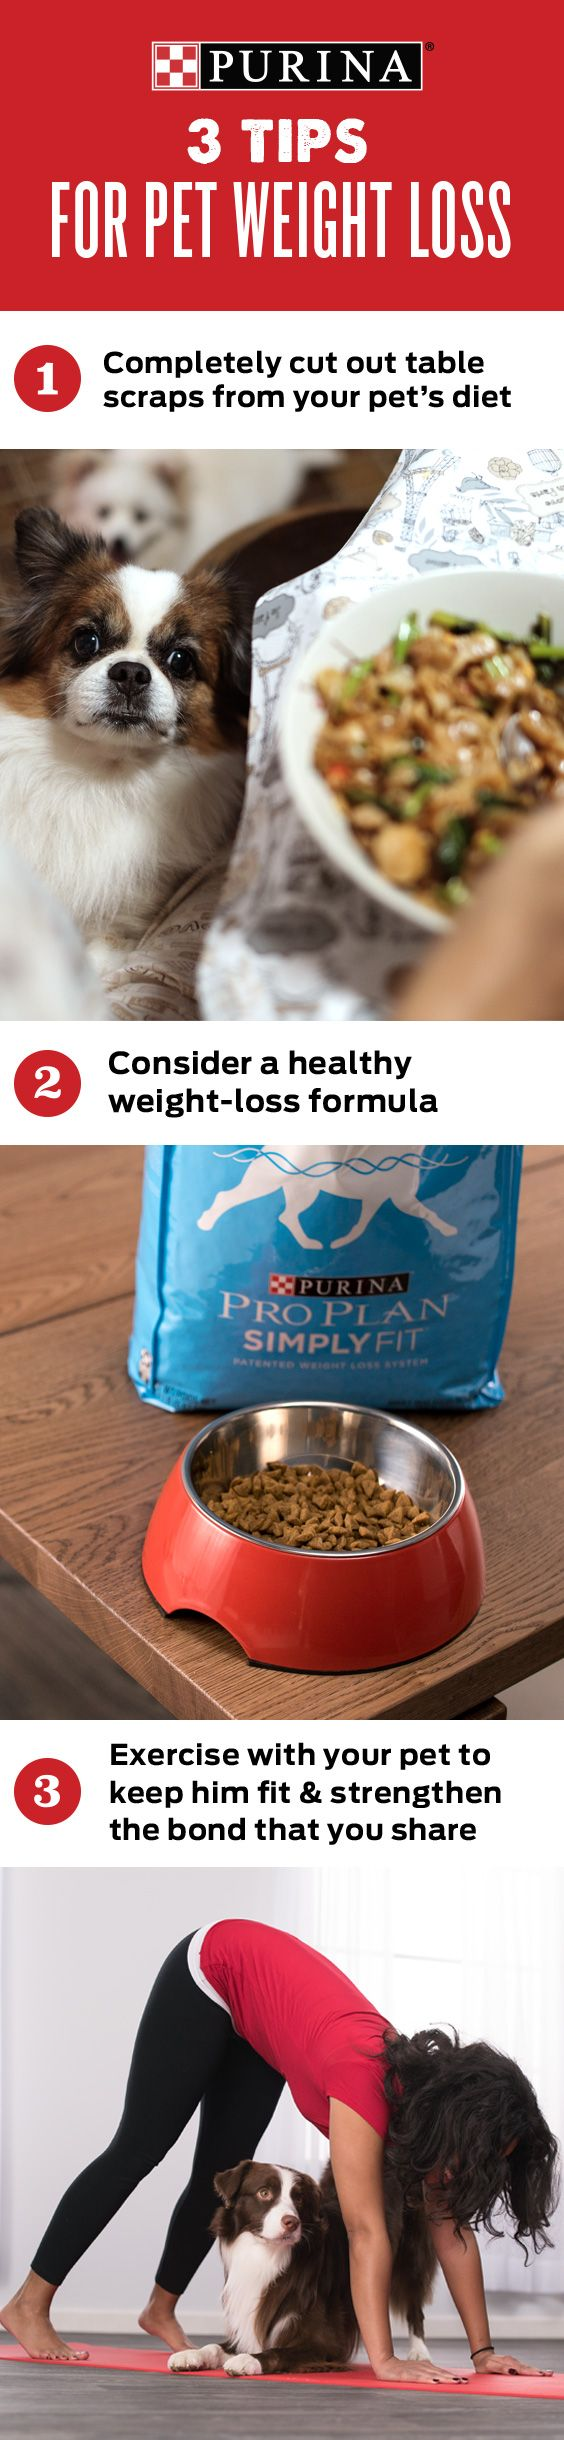 Is my dog overweight? My dog is overweight, what do I do? Find the answers to these questions & more by clicking through to Purina's article on how to know if your dog is overweight & how to help your dog lose weight. By conducting a quick body score check, re-assessing his diet & mixing up his physical activity, you can make strides in your dog's weight loss journey. A healthy life starts with a healthy weight. Learn more about helping your pet start living his best possible life at…